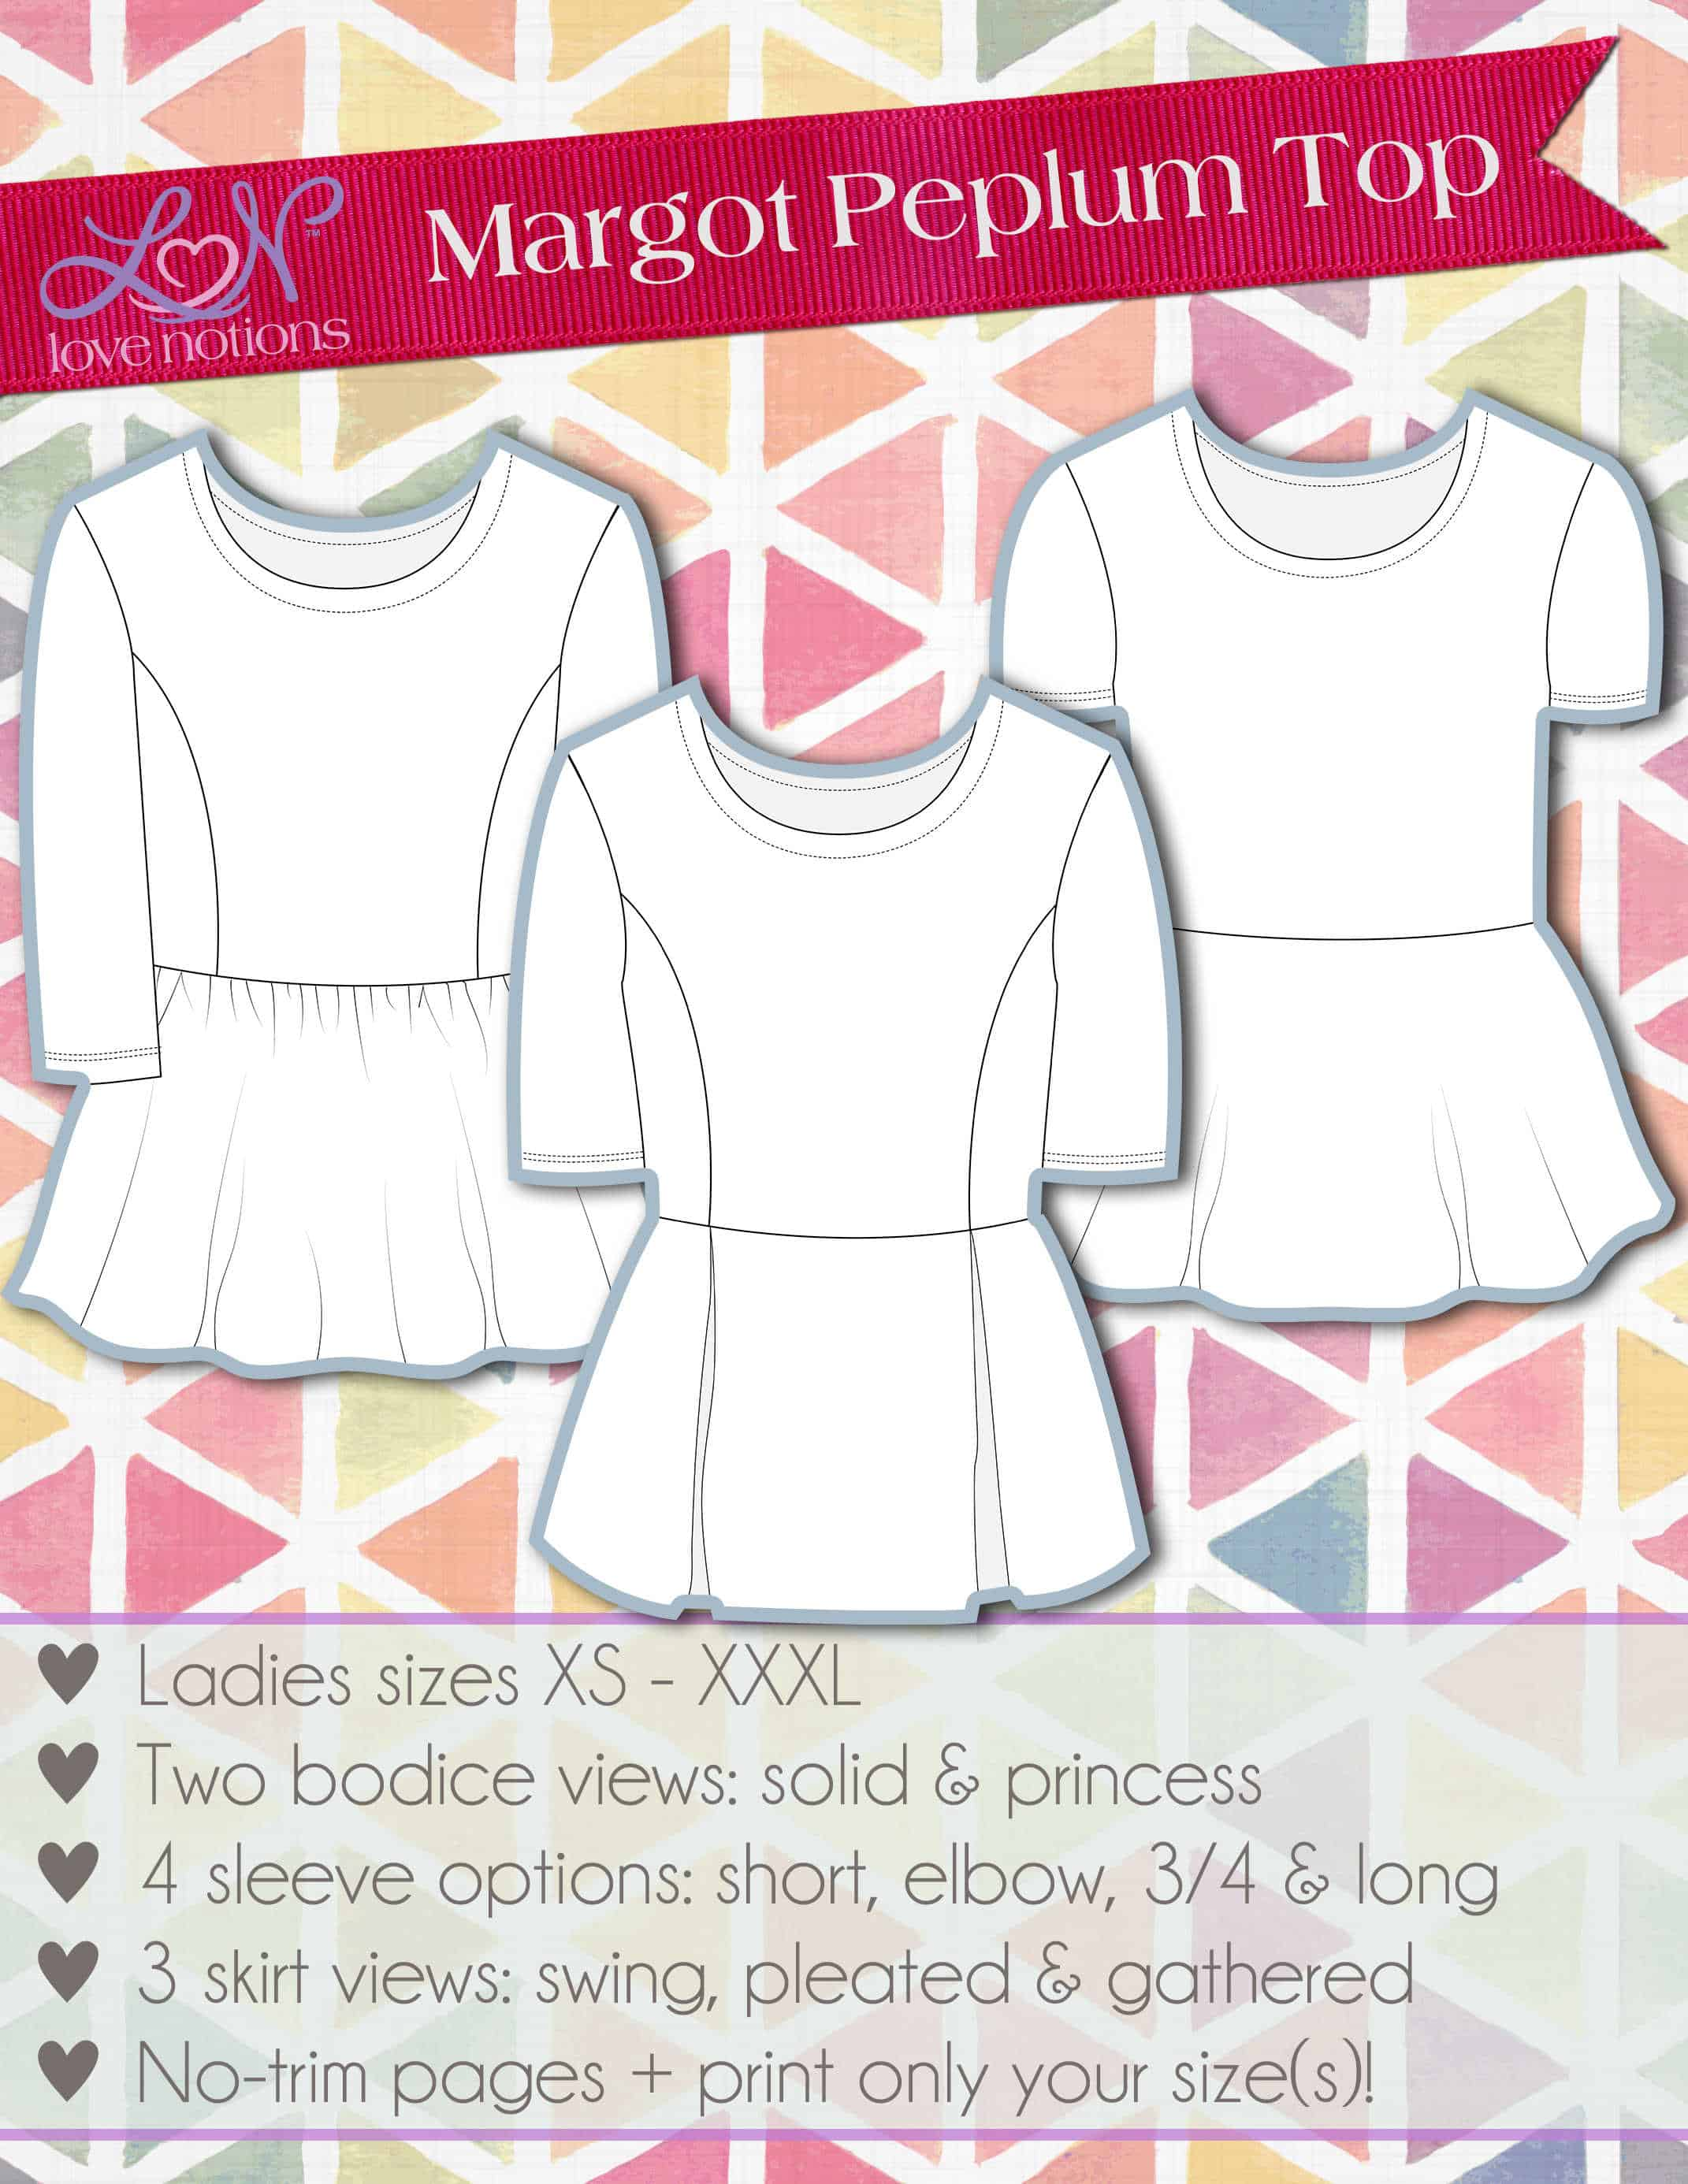 Princess seamed peplum top sewing pattern by Love Notions.